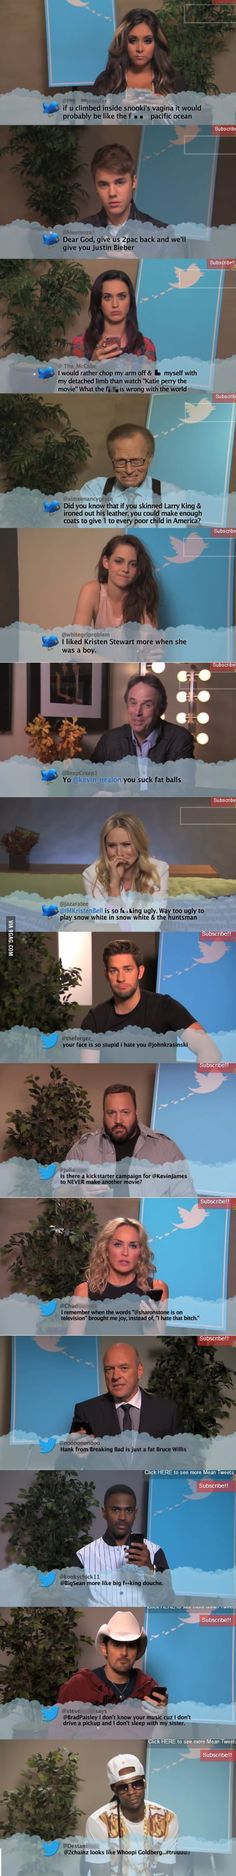 Jimmy Kimmel lets celebrities read mean tweets about them. The Brad Paisley one is the best :)